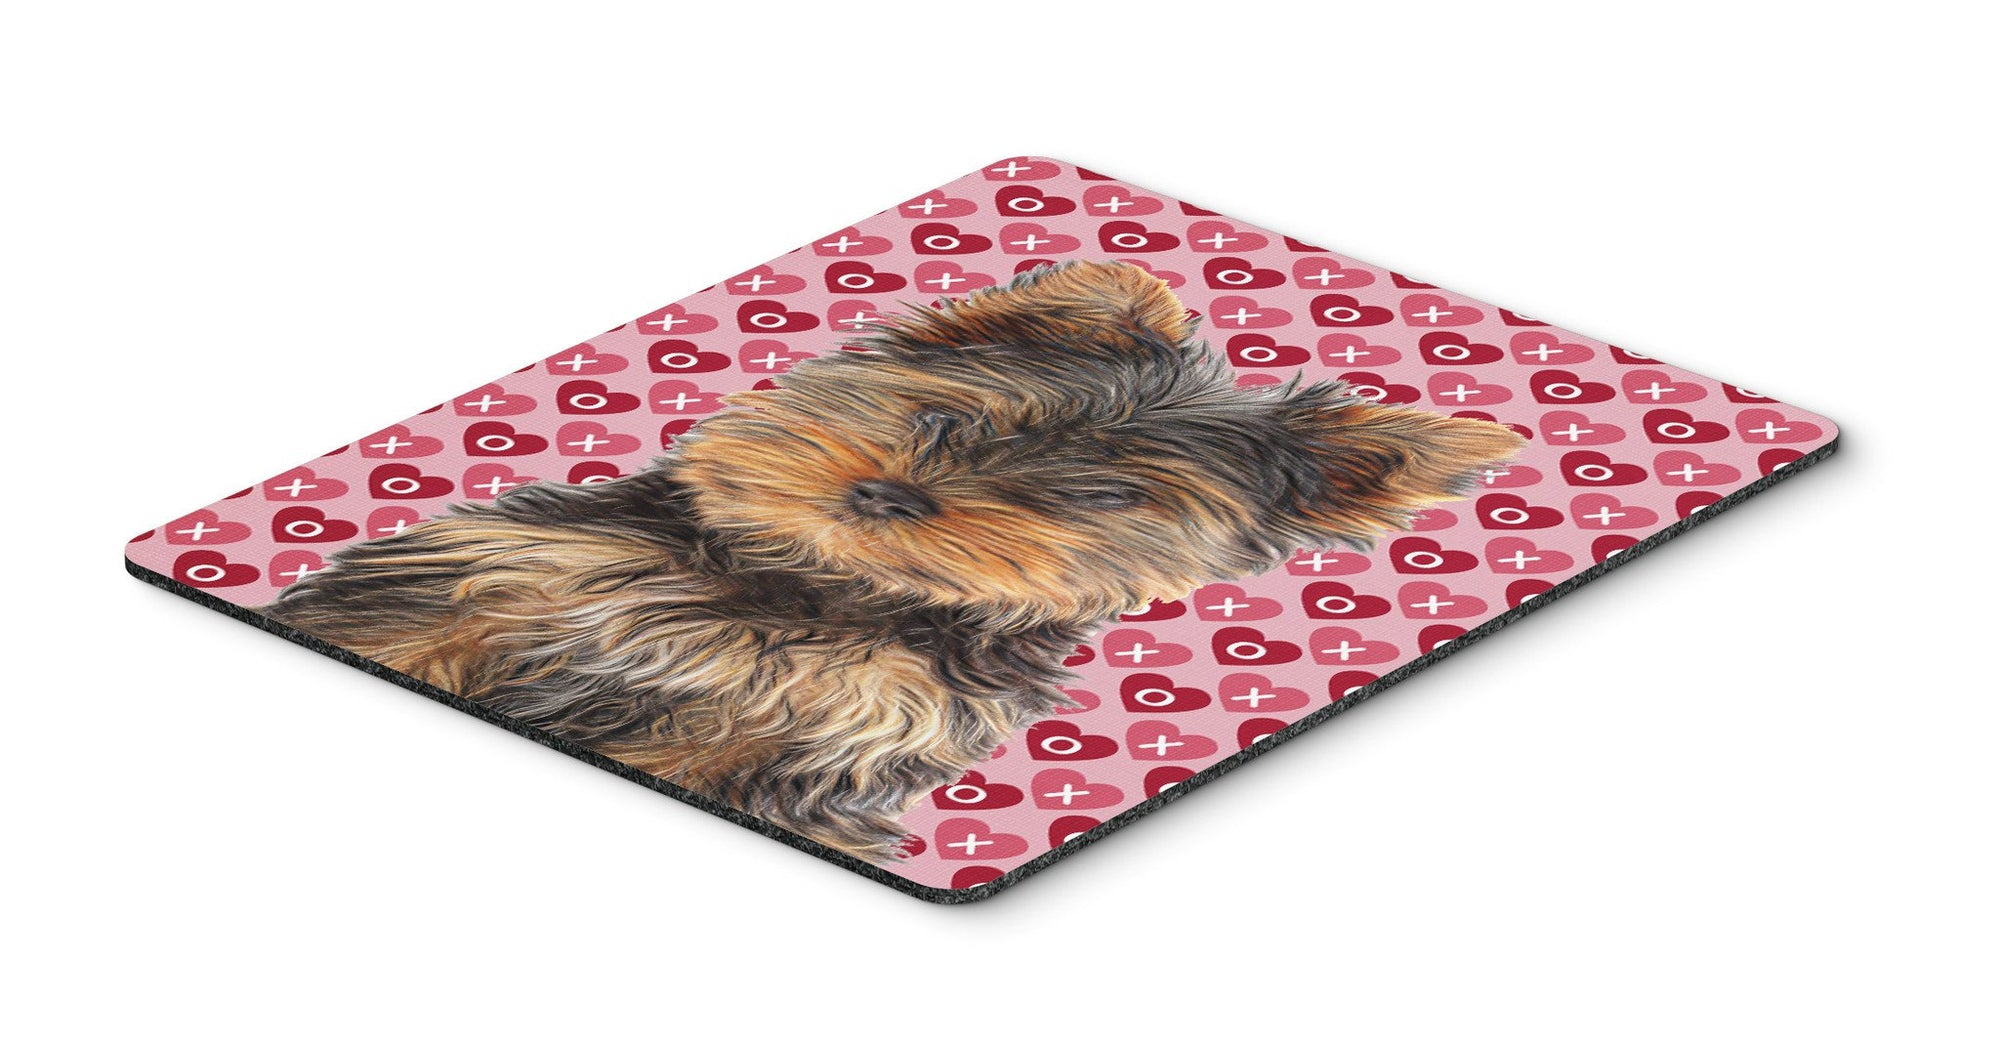 Hearts Love and Valentine's Day Yorkie Puppy / Yorkshire Terrier Mouse Pad, Hot Pad or Trivet KJ1195MP by Caroline's Treasures